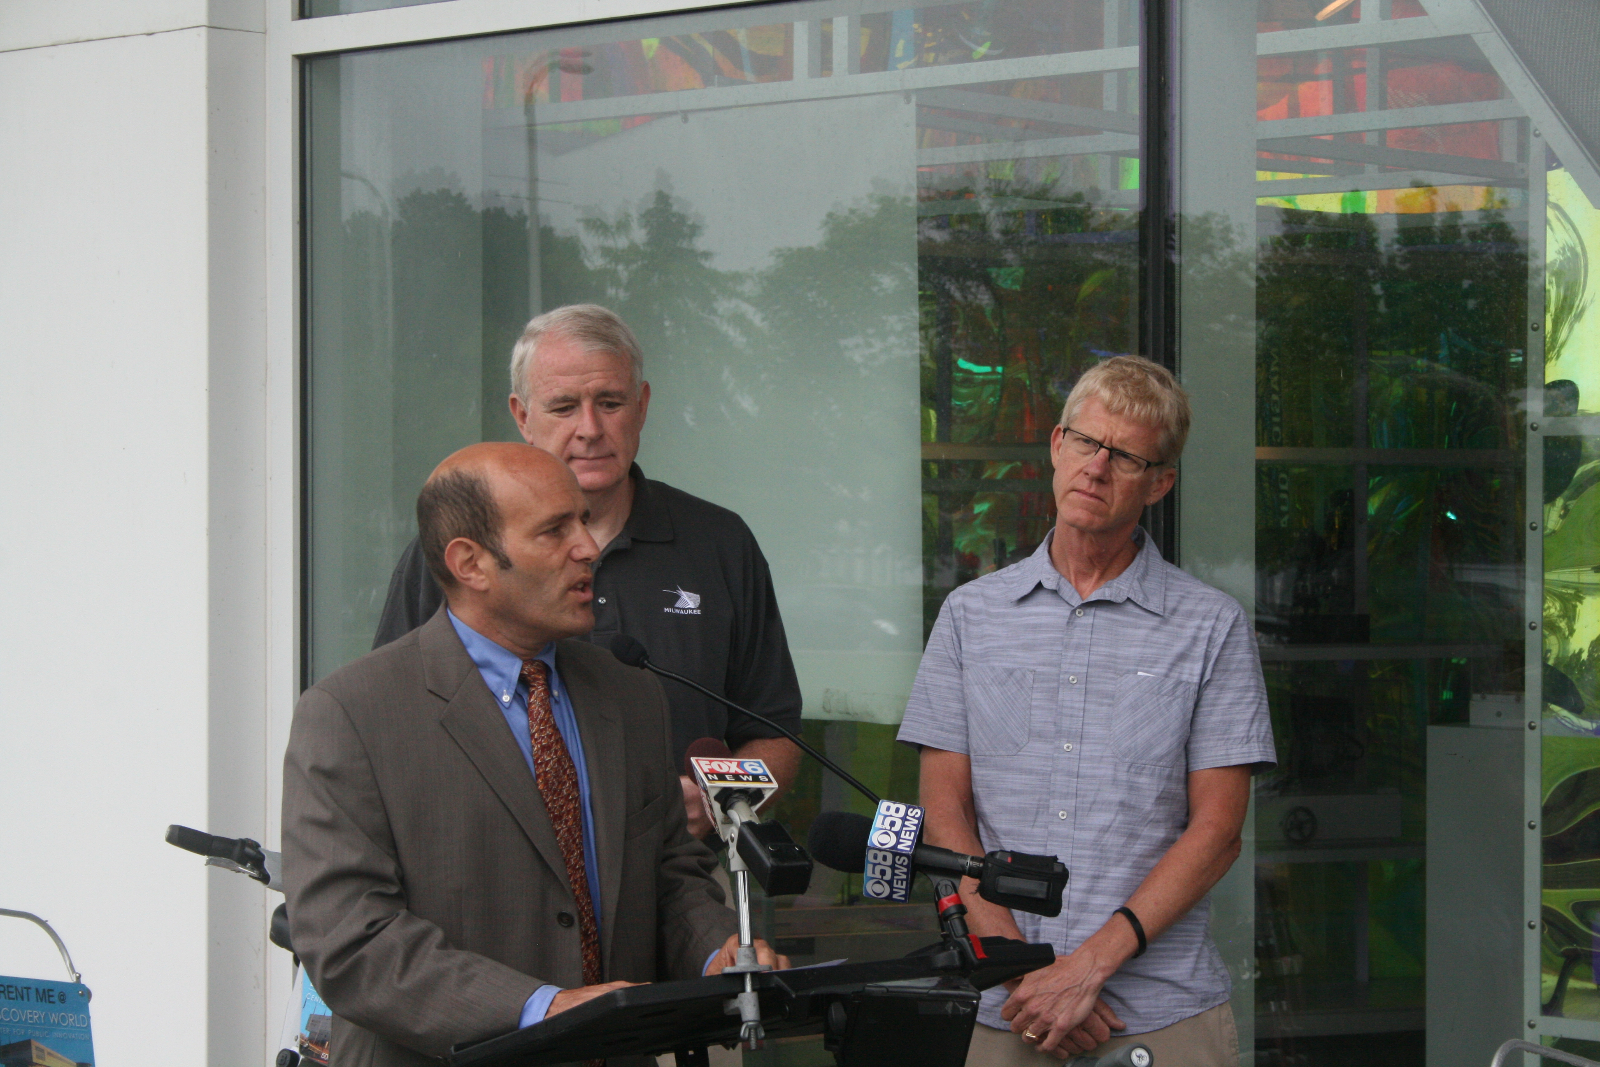 Bruce Keyes explains the benefits of bike-sharing.